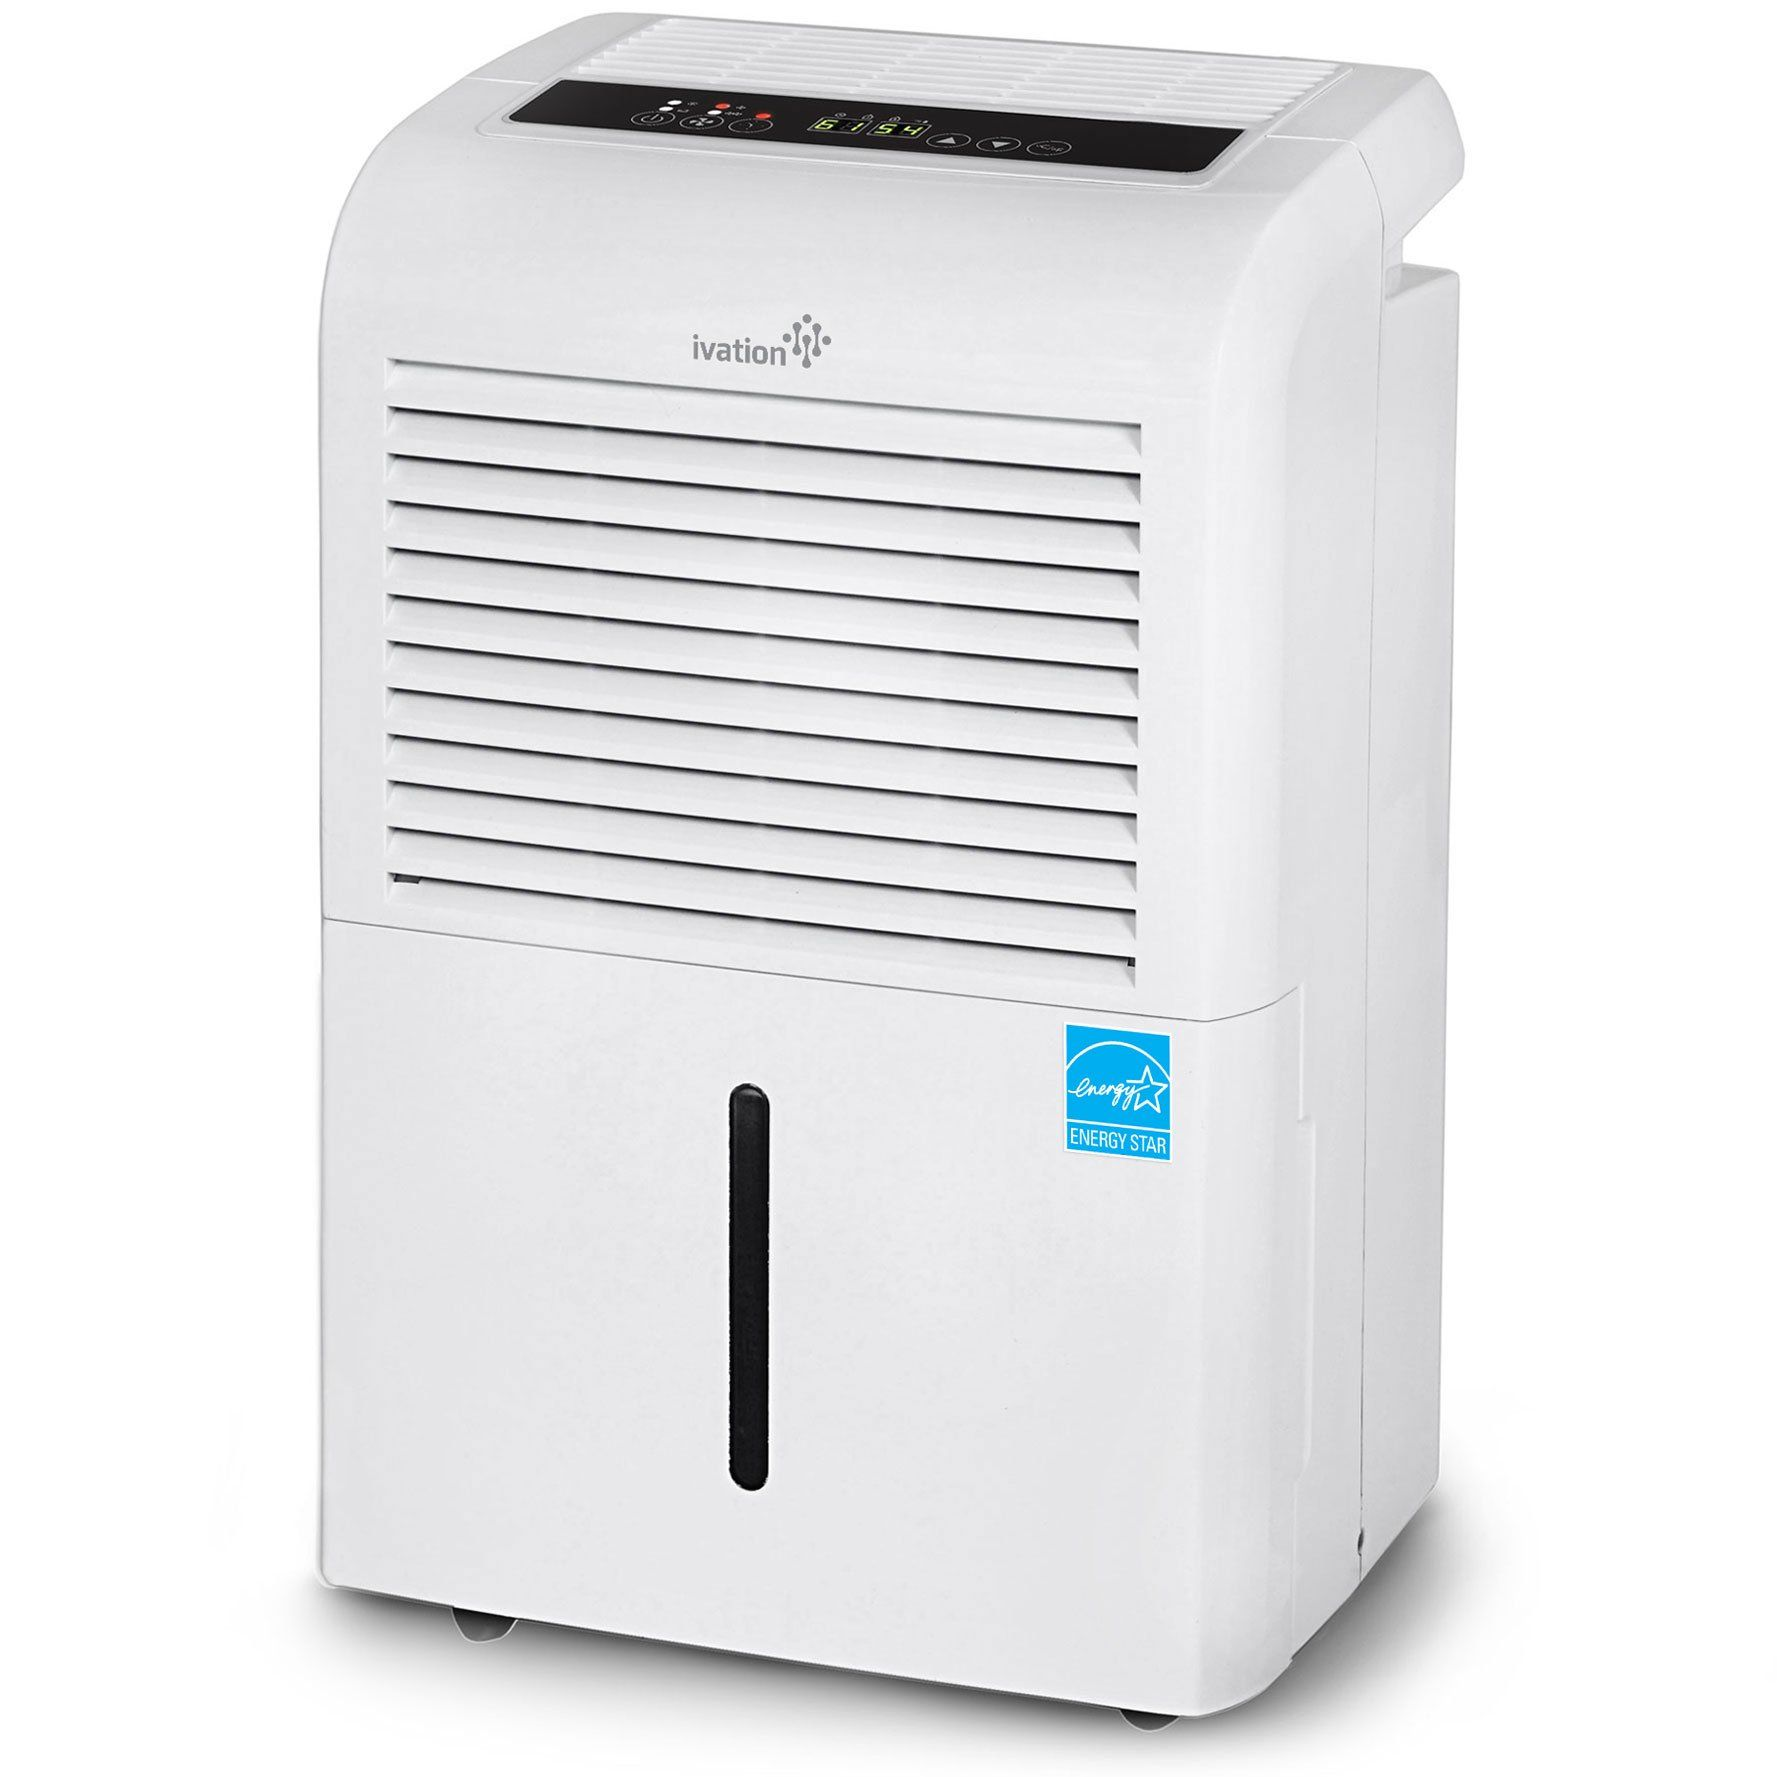 Ivation 70 Pint Energy Star Dehumidifier LargeCapacity For